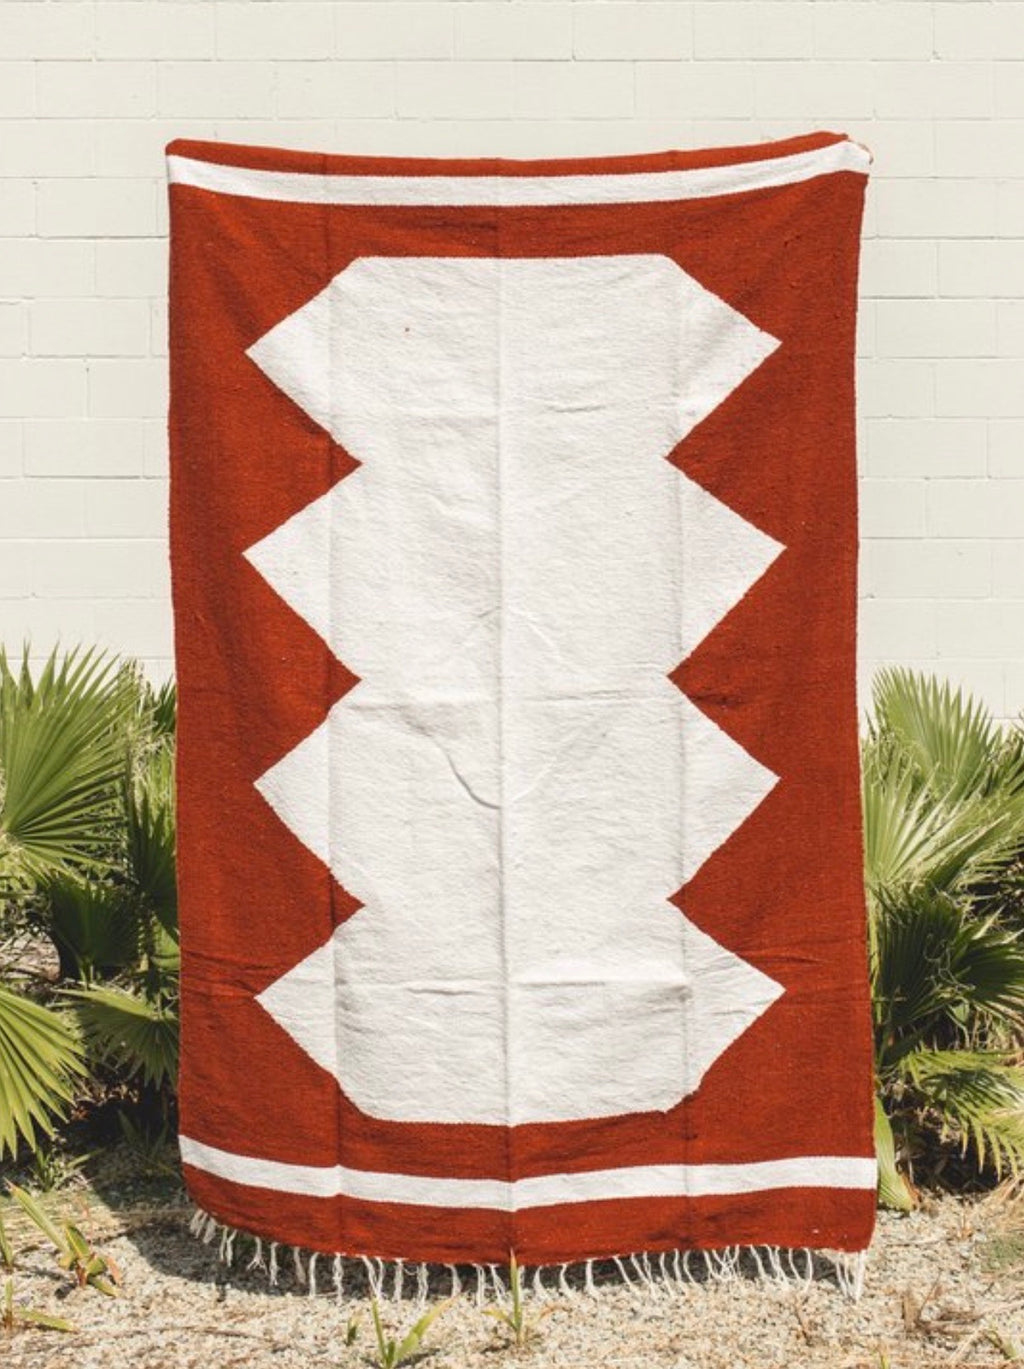 Mixteca Tribal Blanket